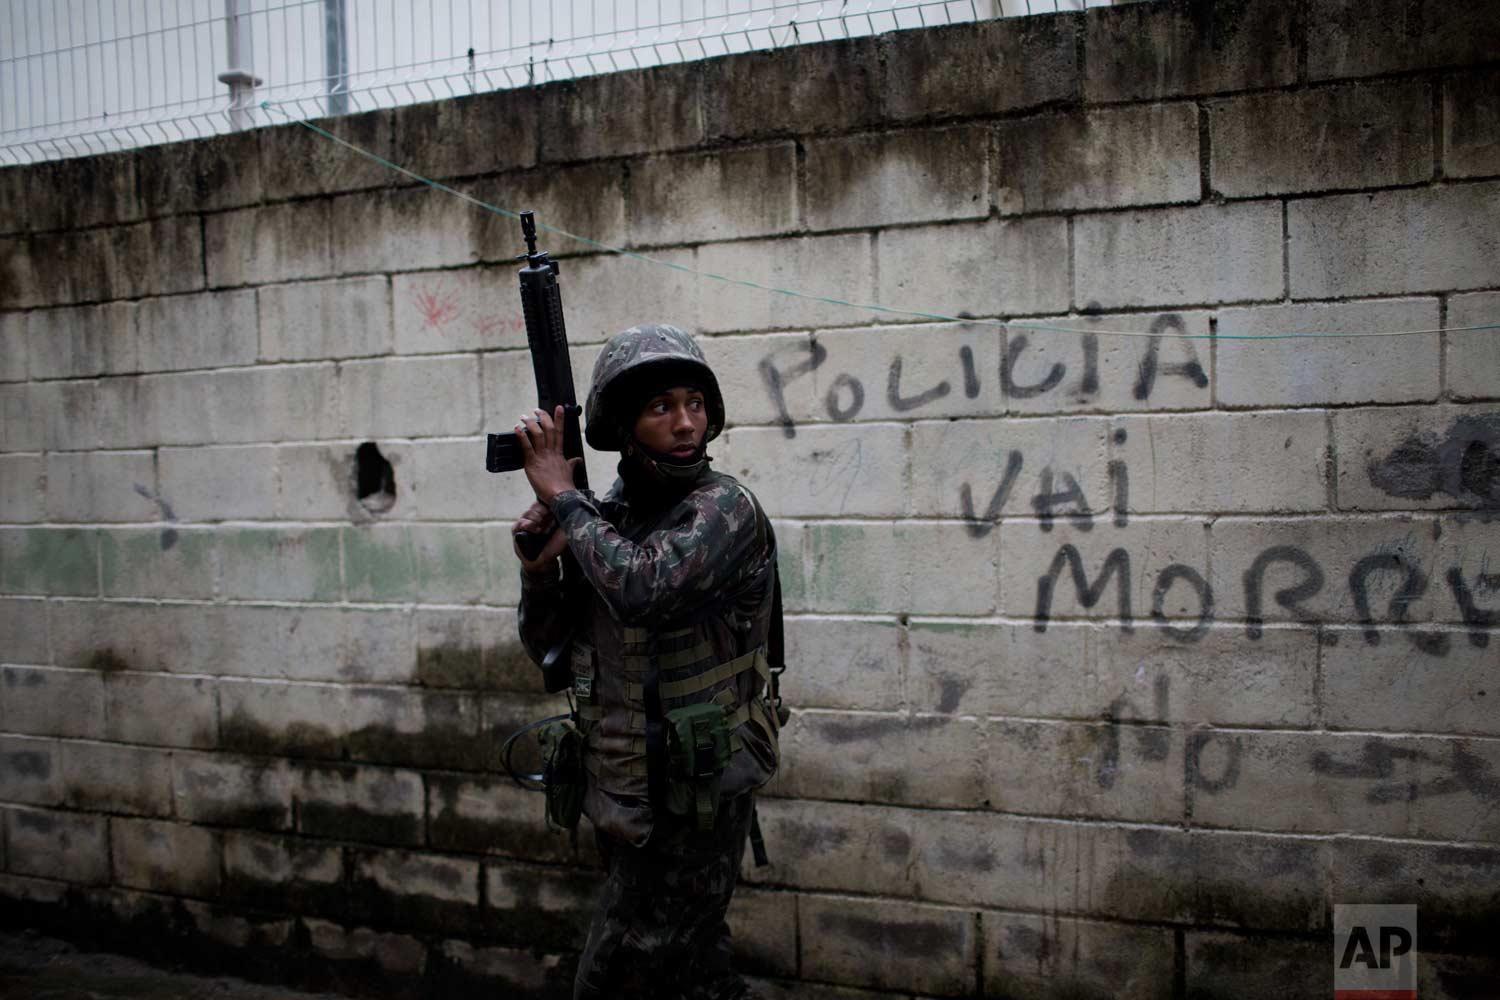 """In this Aug. 21, 2017 photo, a soldier takes position during a security operation next to a wall spray painted with a message that reads in Portuguese: """"Police die,"""" in the Jacarezinho slum, in Rio de Janeiro, Brazil. Thousands of soldiers and police are occupying a series of slum communities in northern part of the city as part of efforts to combat a spike in violence. (AP Photo/Silvia Izquierdo)"""